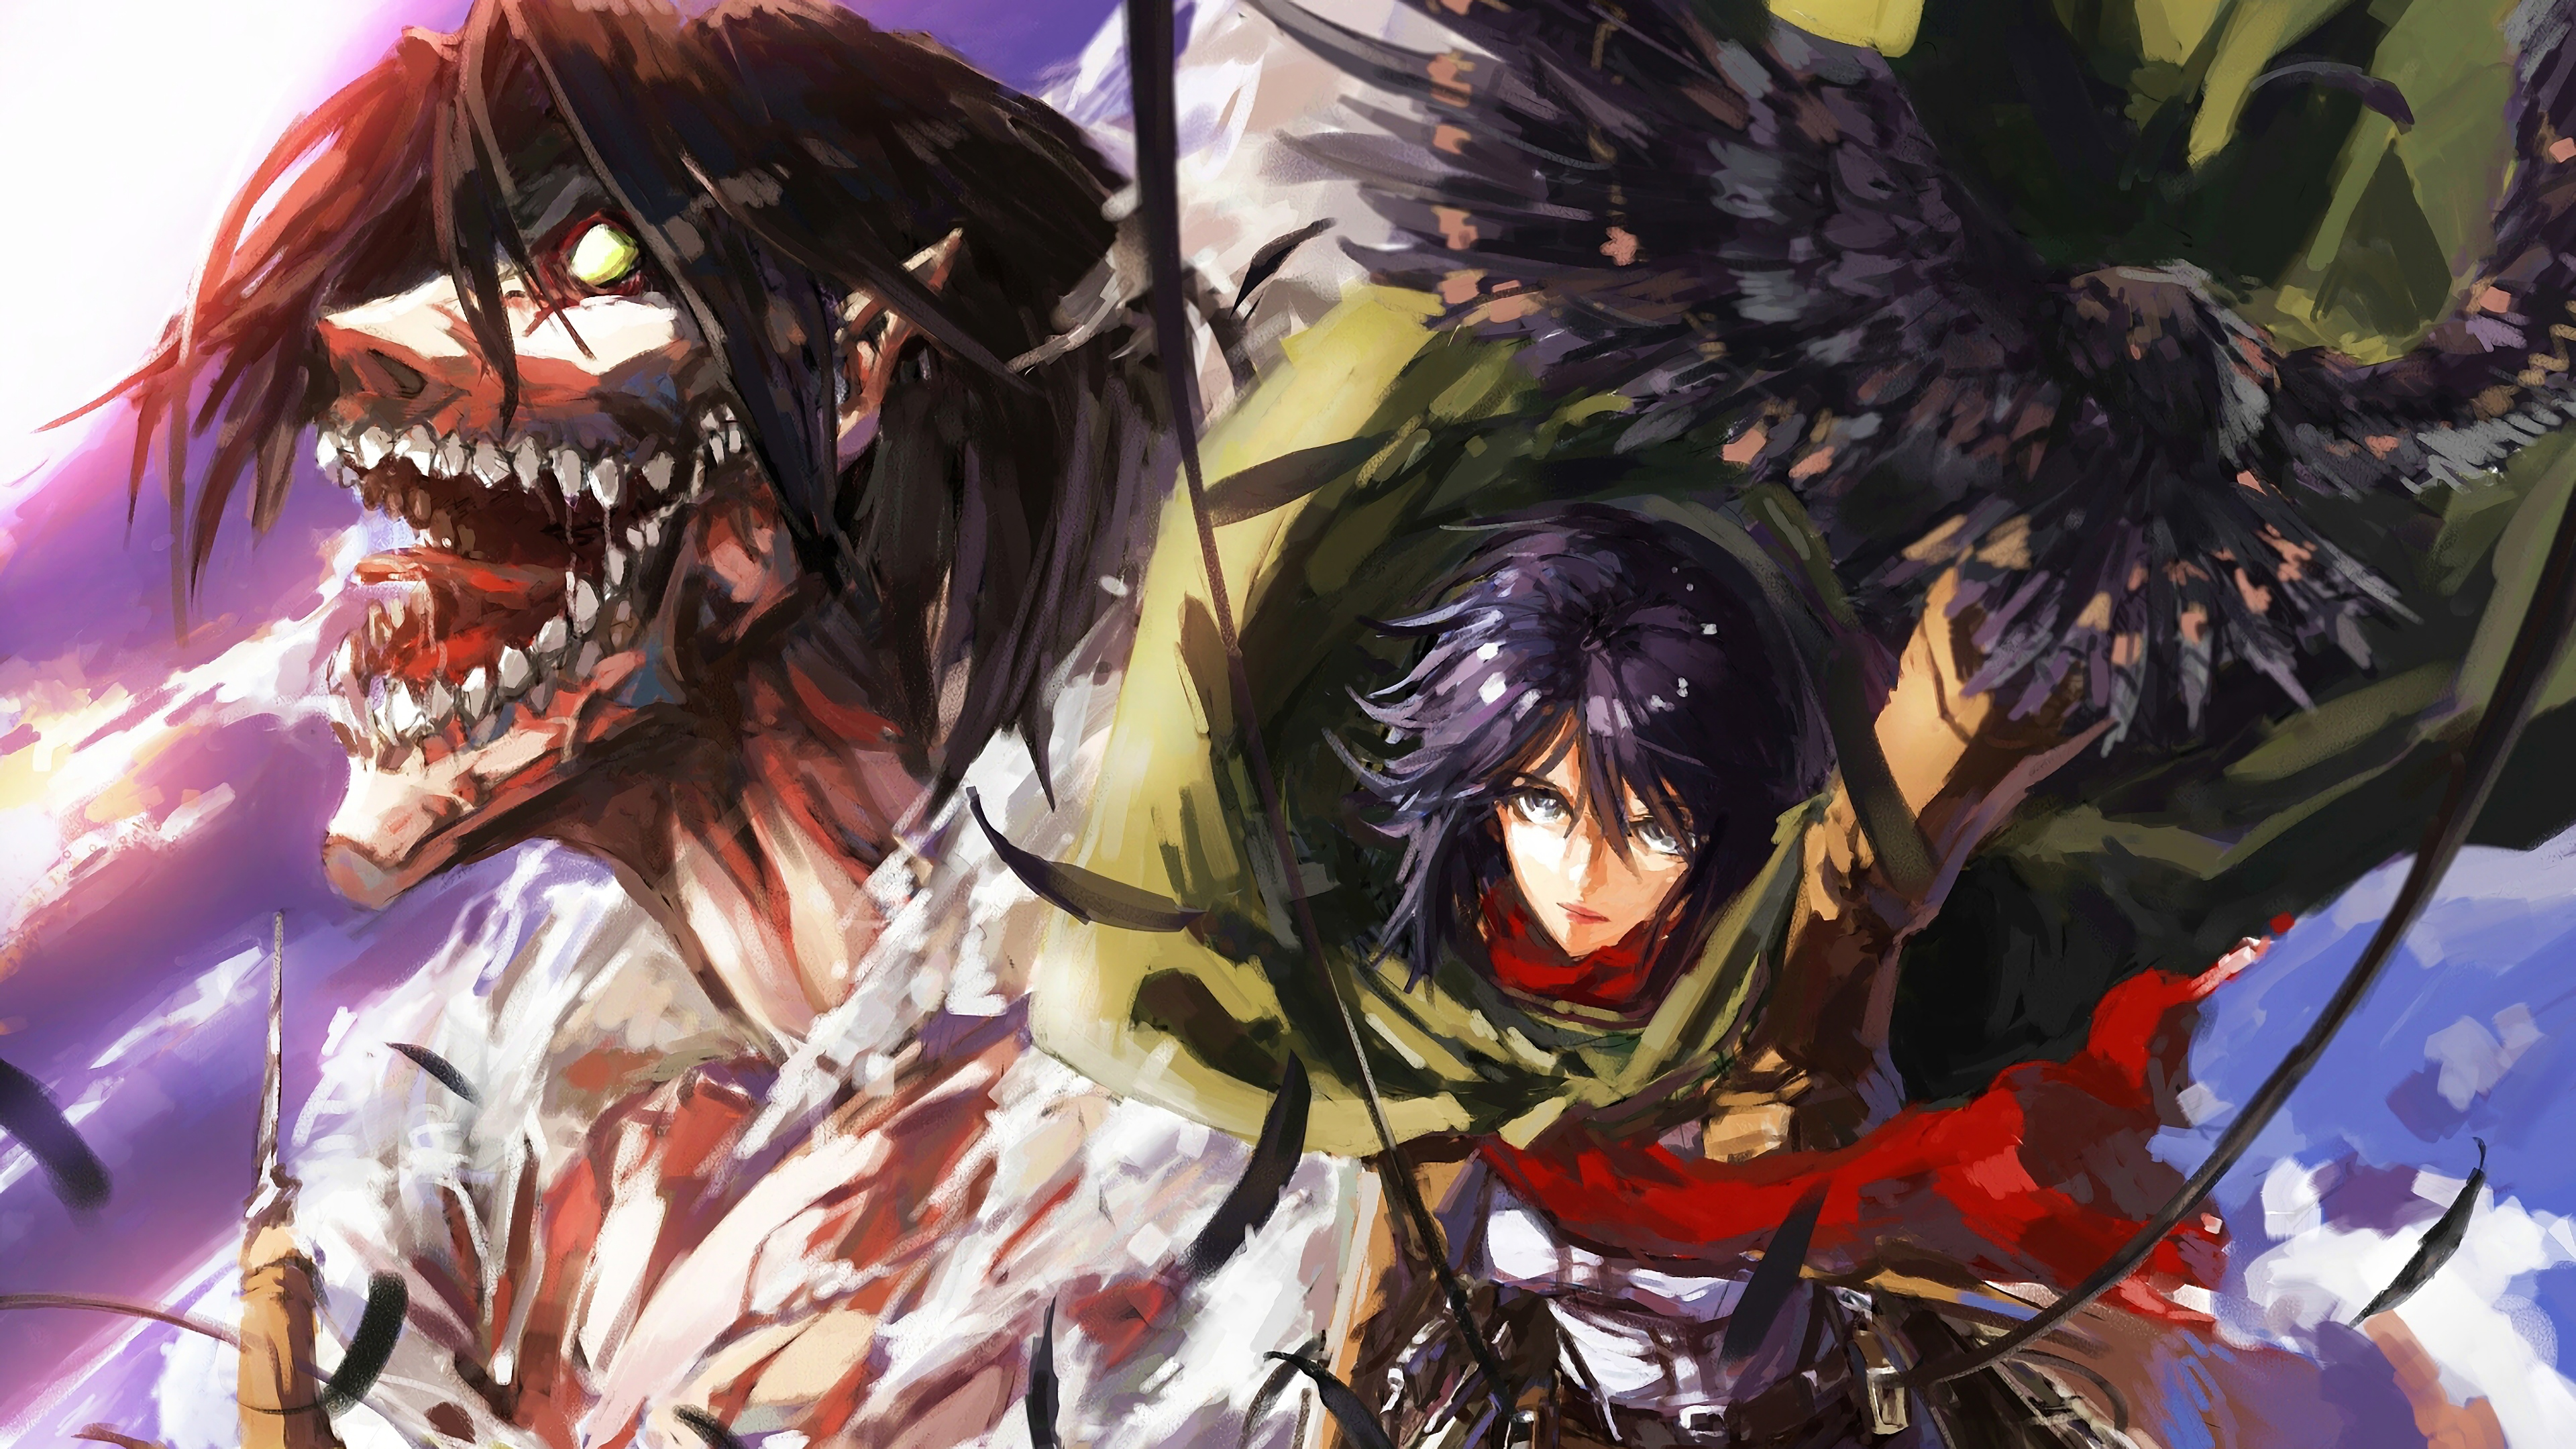 Attack On Titan 2546902 Hd Wallpaper Backgrounds Download